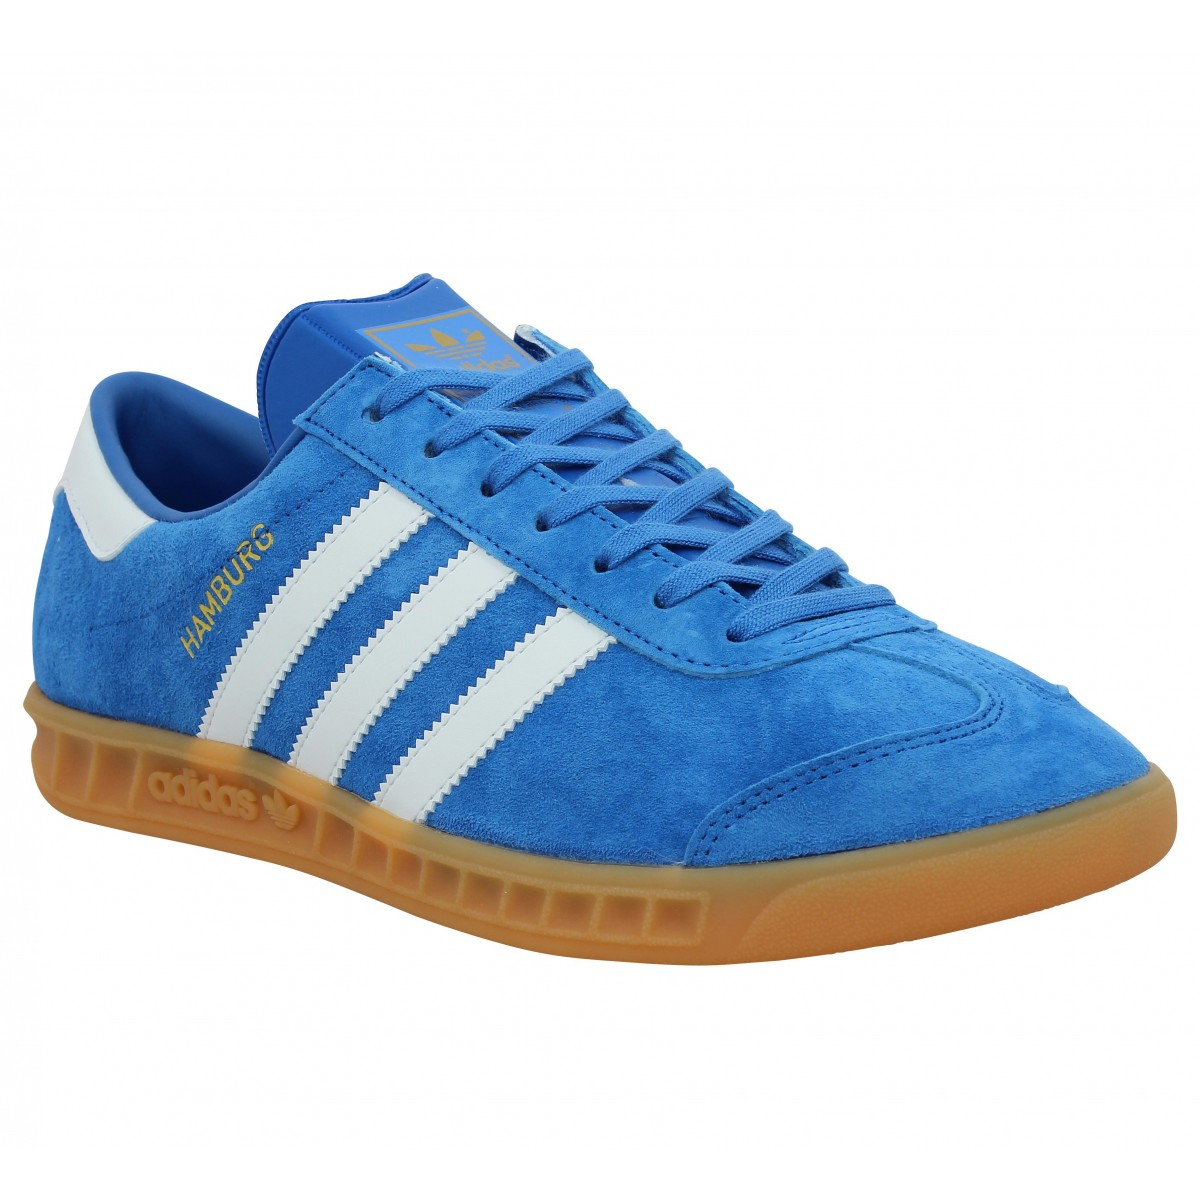 Baskets ADIDAS Hamburg Bleu